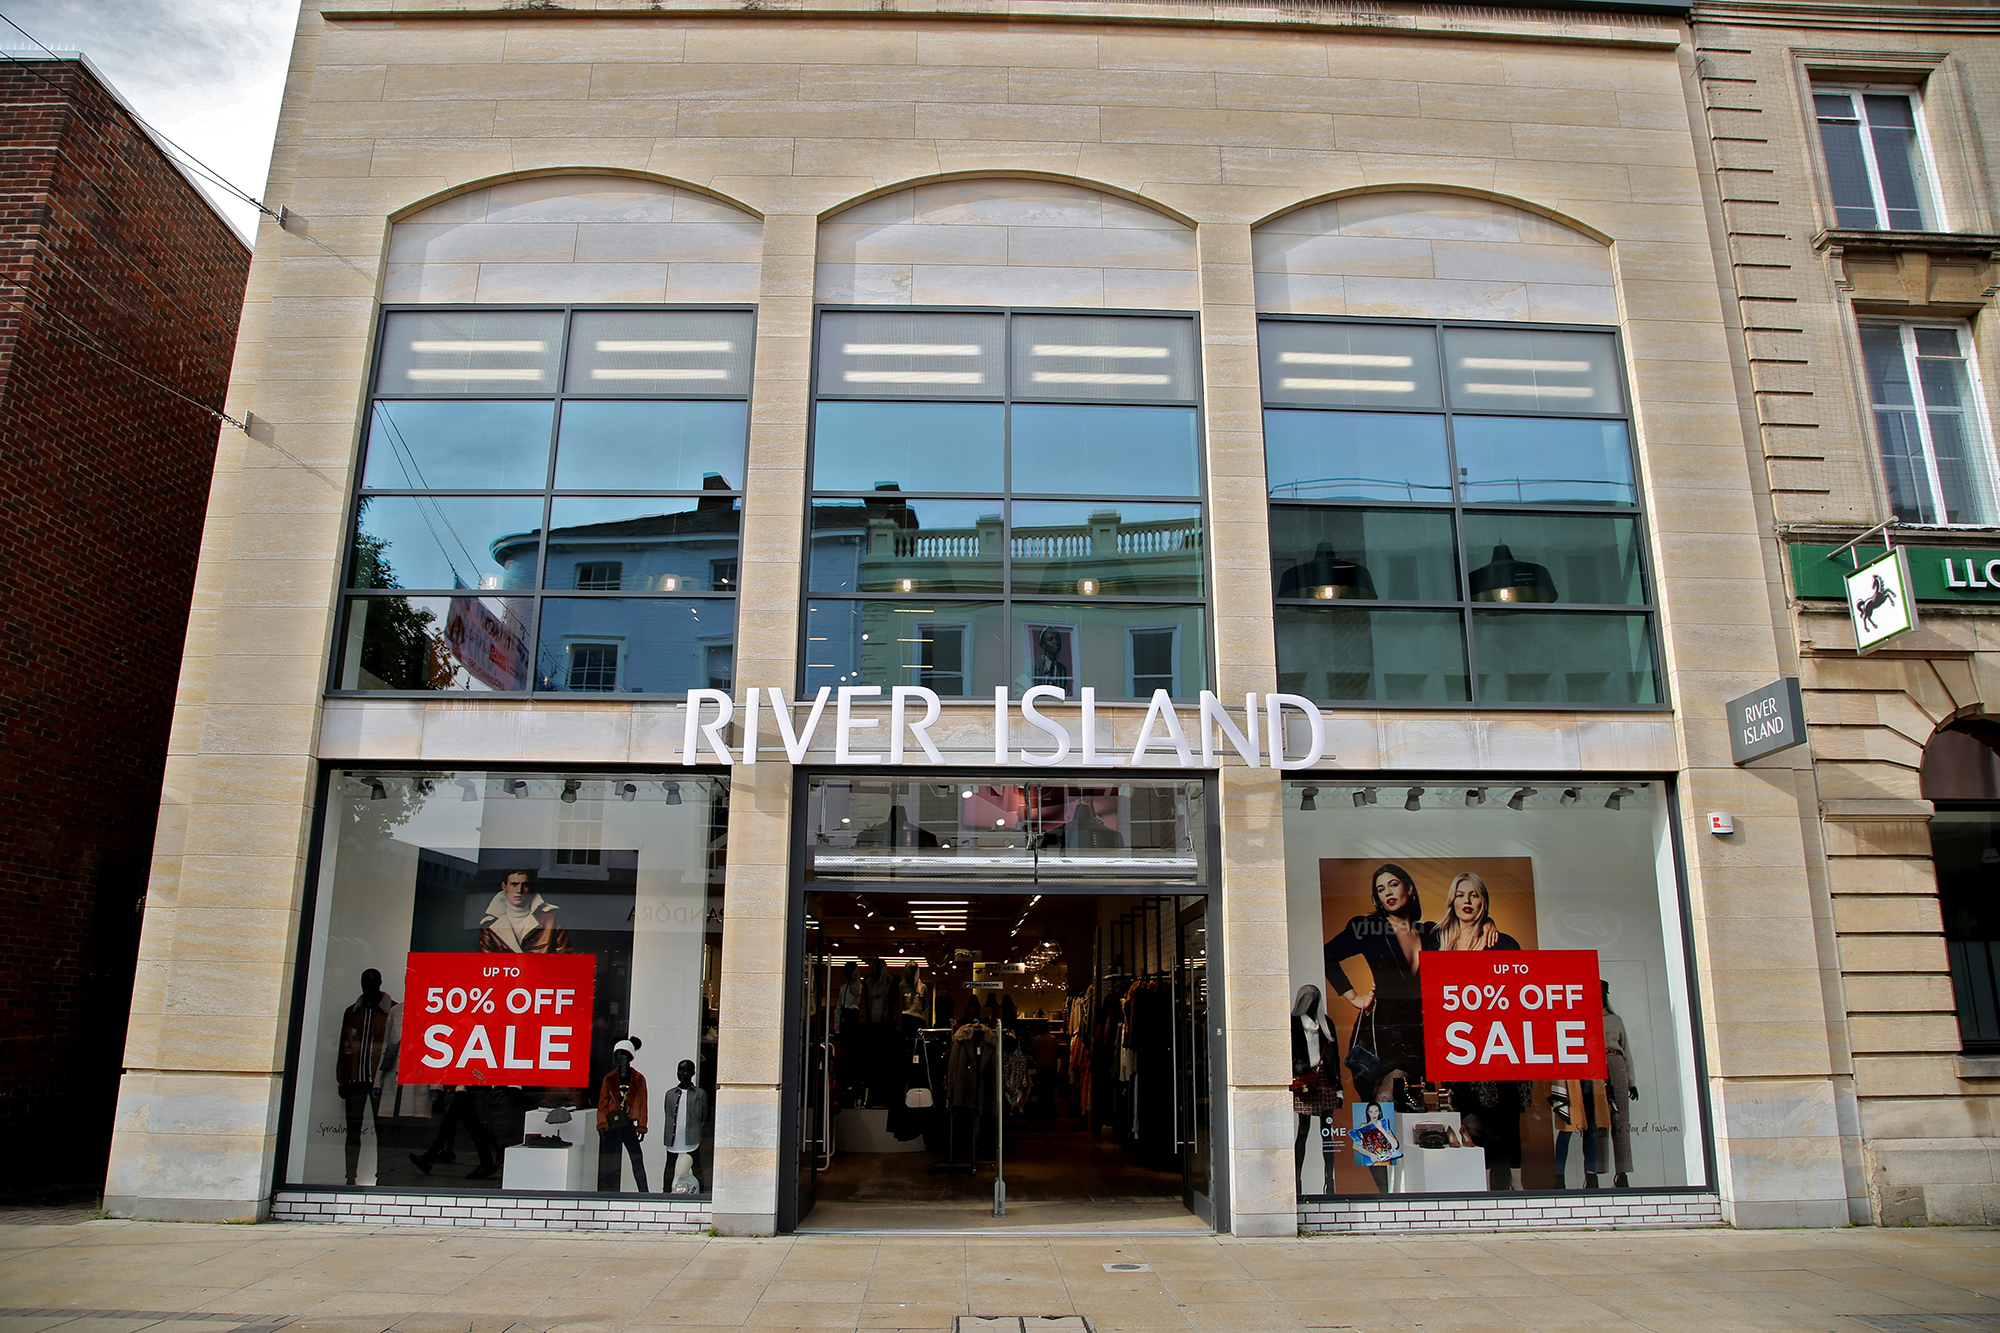 River Island, Lincoln – Grey Aluminium Curtain Walling and Shop Fronts by Newglaze Windows